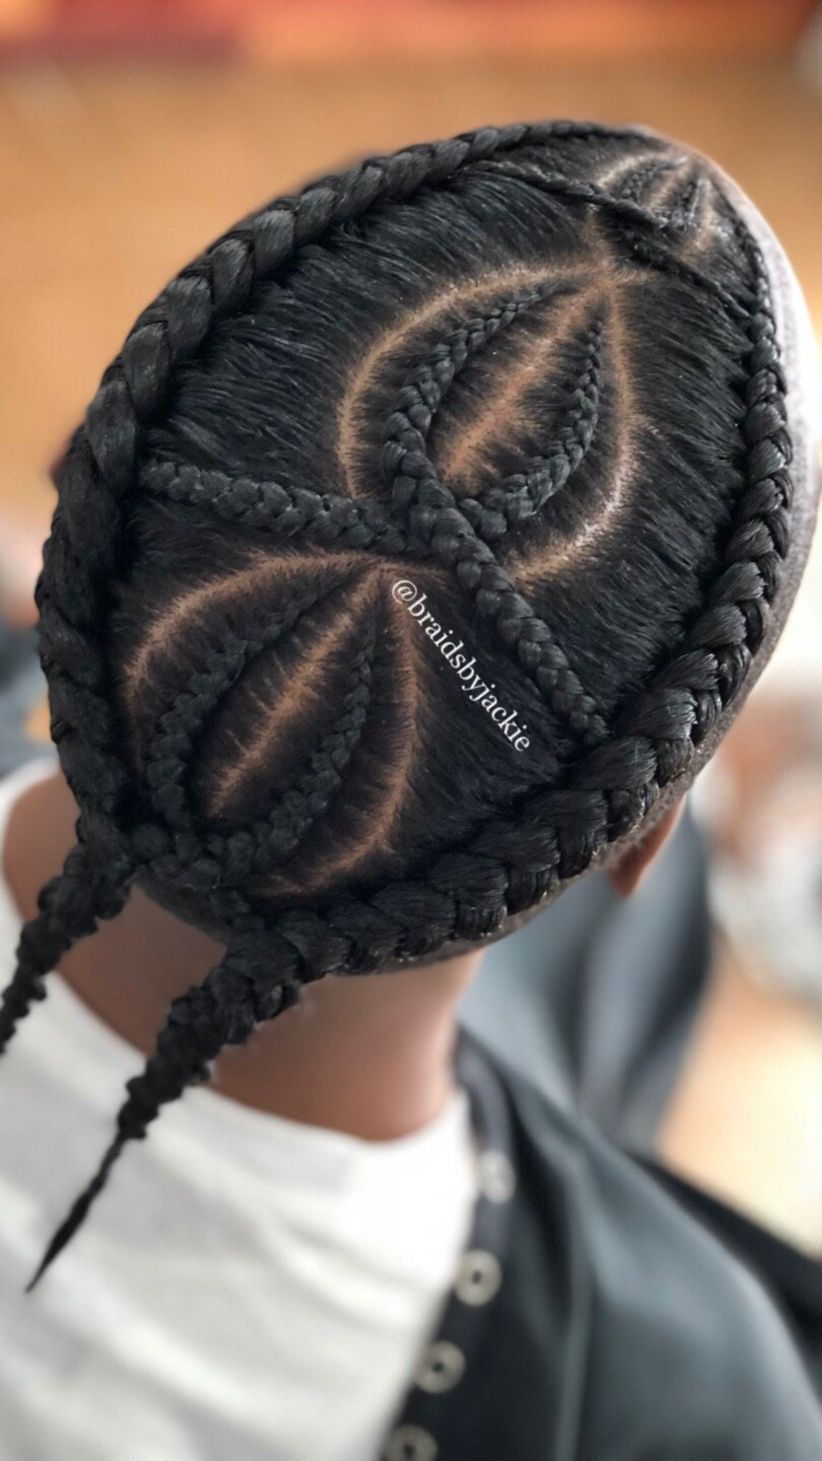 The Best Black Braided Hairstyles For Men Who Turn Their Heads Trend Of The Summer 2018 Black Brai Mens Braids Hairstyles Mens Braids Braids For Black Hair